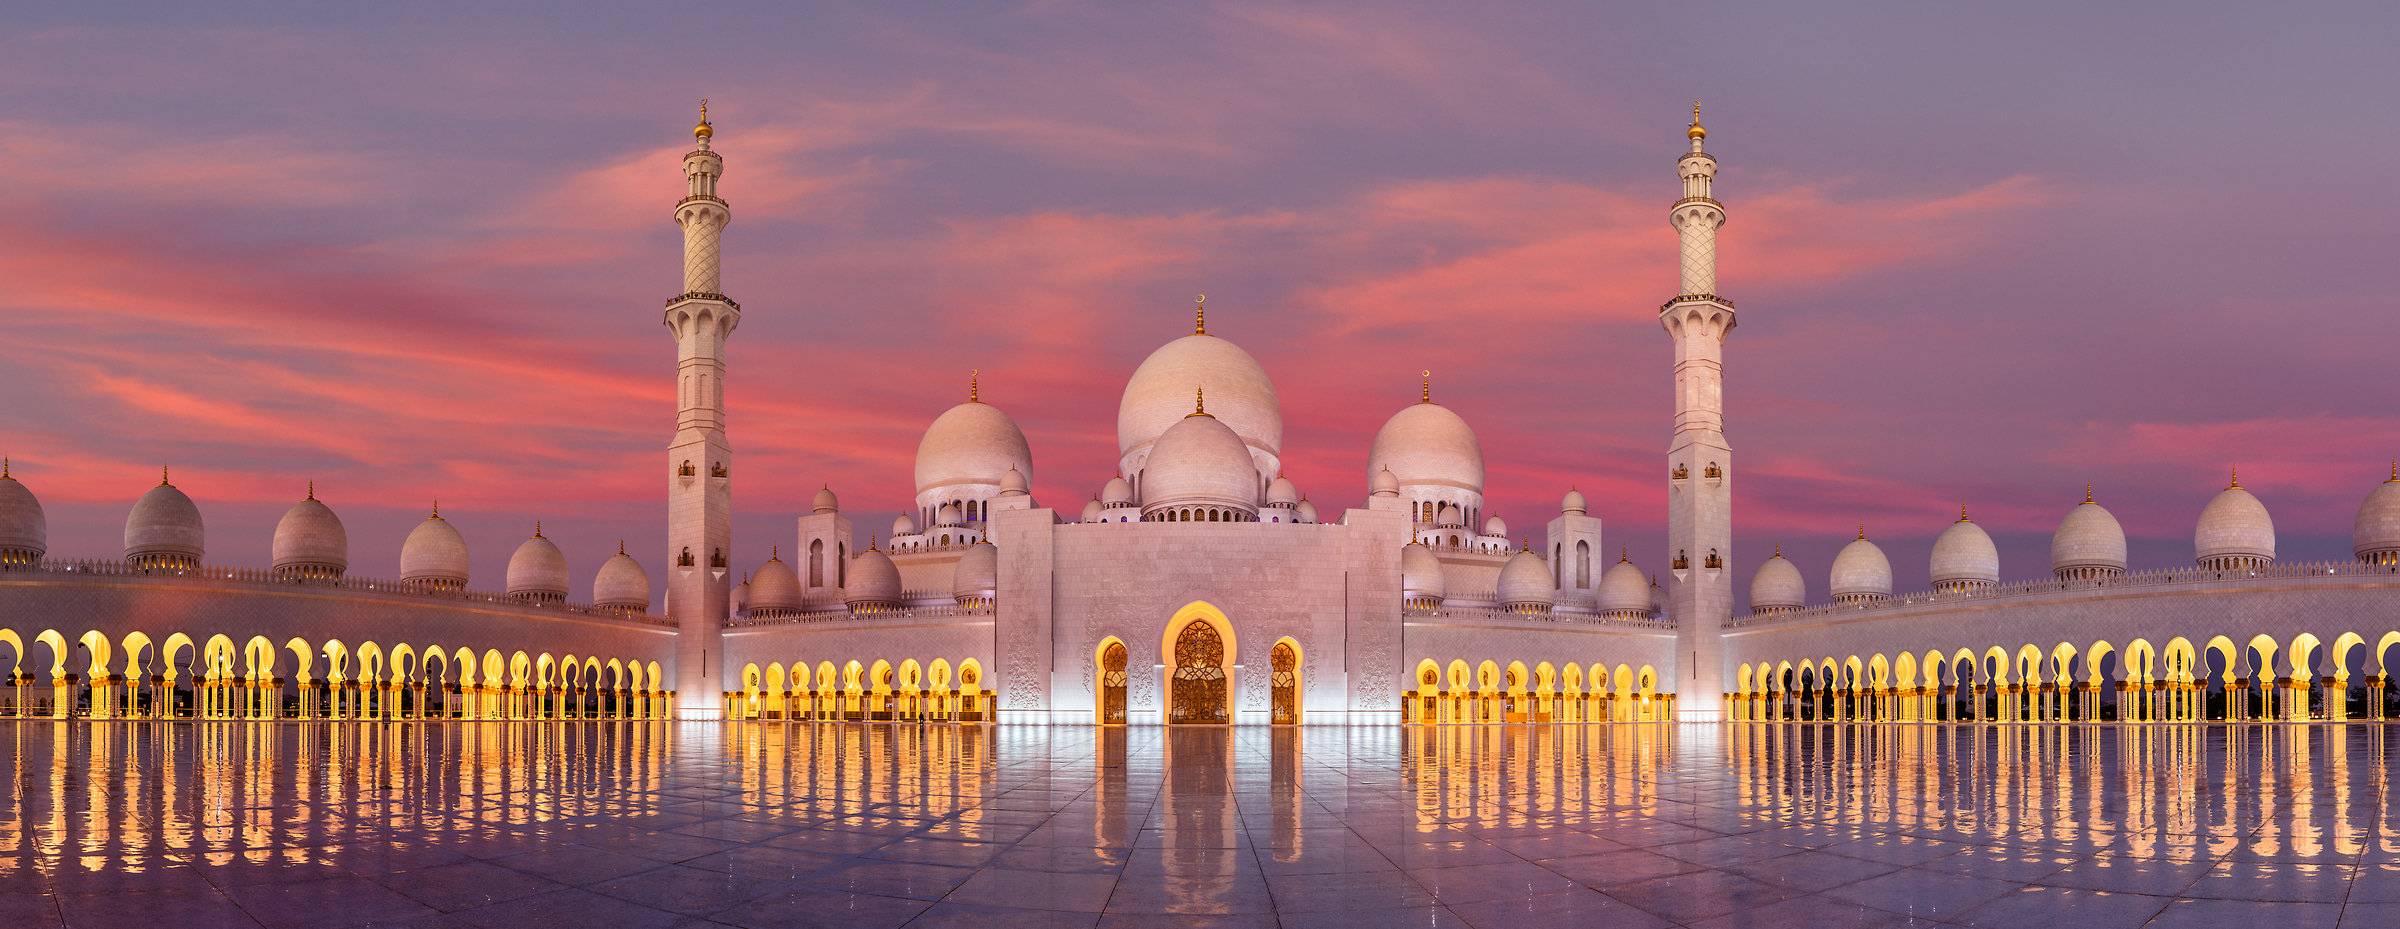 1,296 megapixels! A very high resolution, large-format photo of the Sheikh Zayed Grand Mosque in Anu Dhabi at sunrise; fine art photograph created by Chris Collacott in the United Arab Emirates